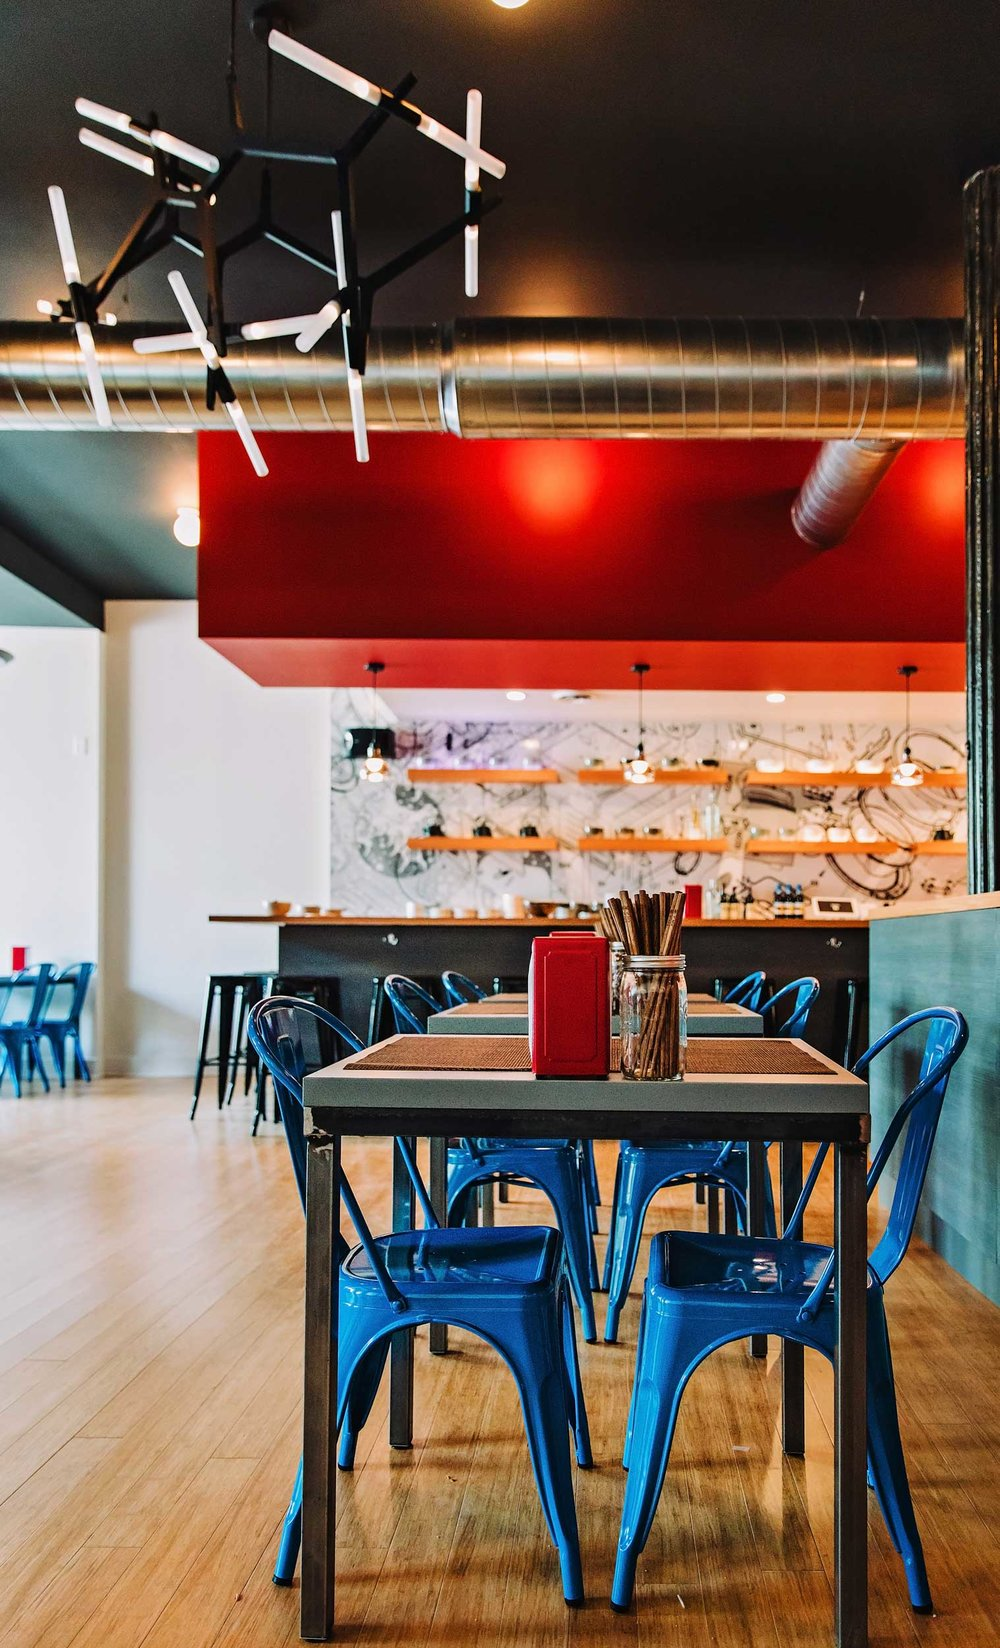 New restaurant interior (photo: Kelly Crews Photography)